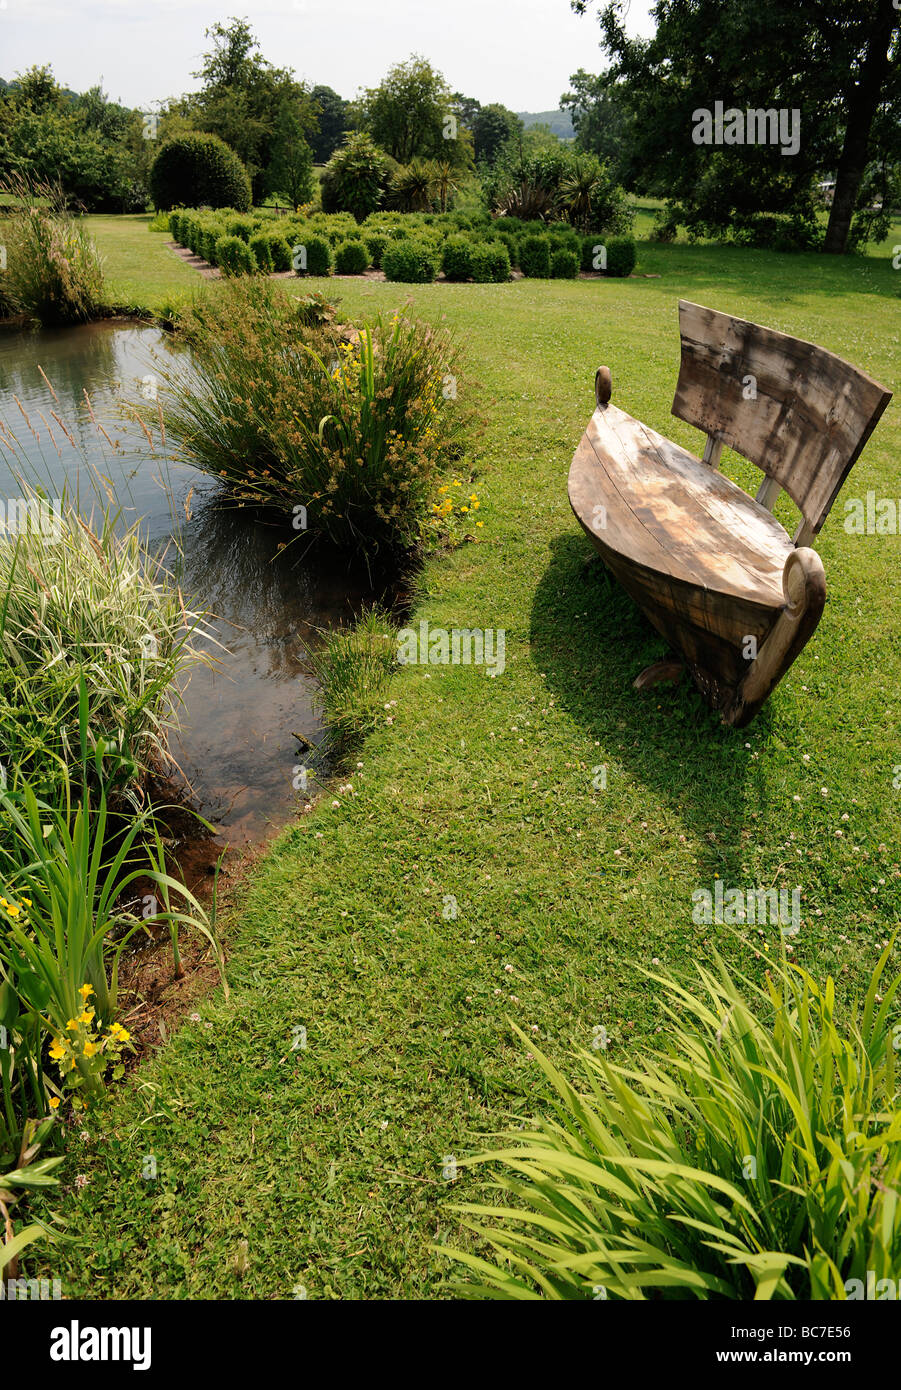 Boat shaped seat by the lake of a landscaped English Garden in Stoberry Park, Somerset, UK Stock Photo